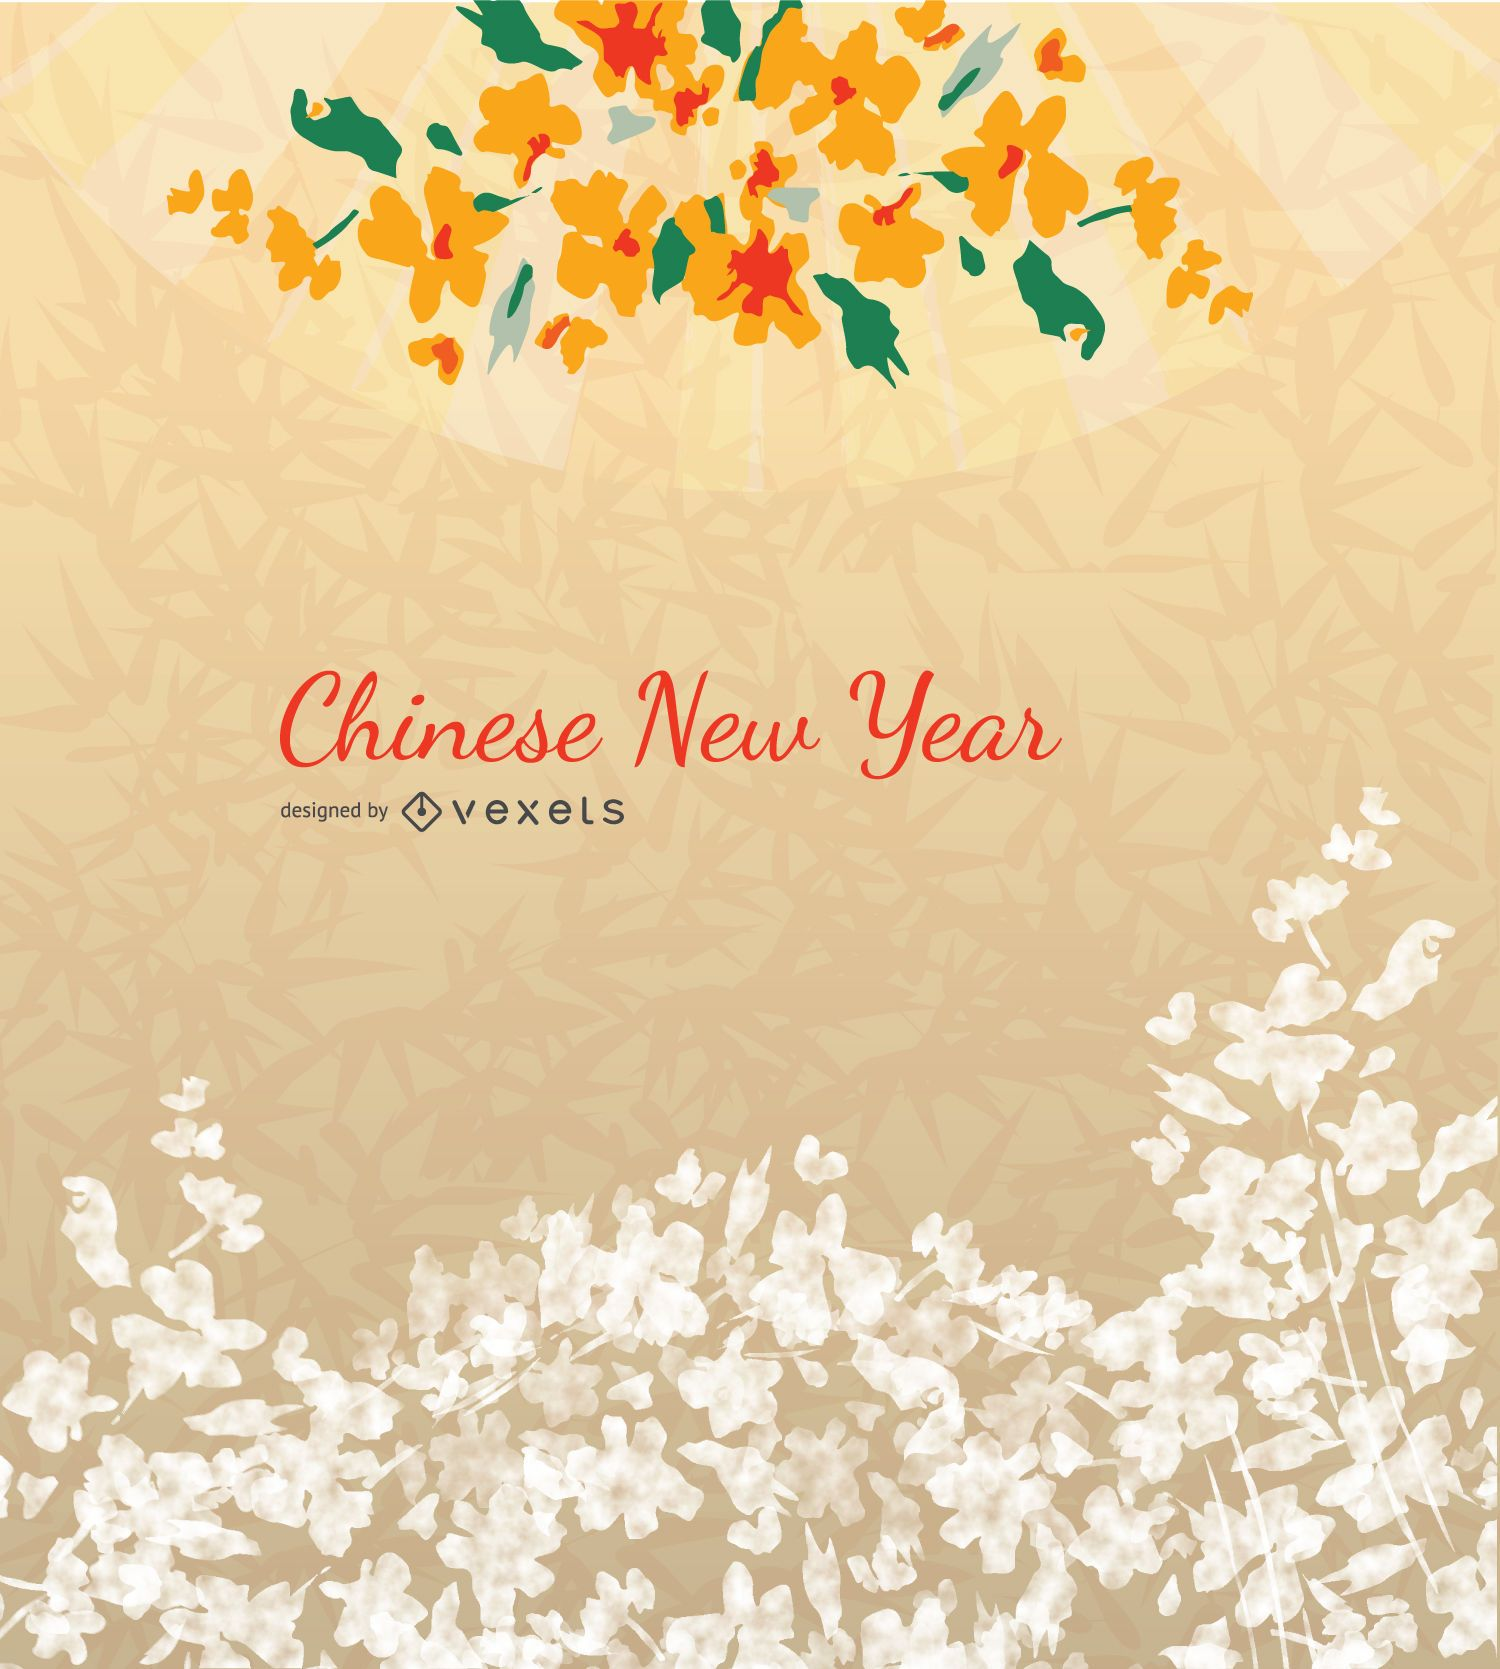 chinese new year background download large image 1500x1669px license image user